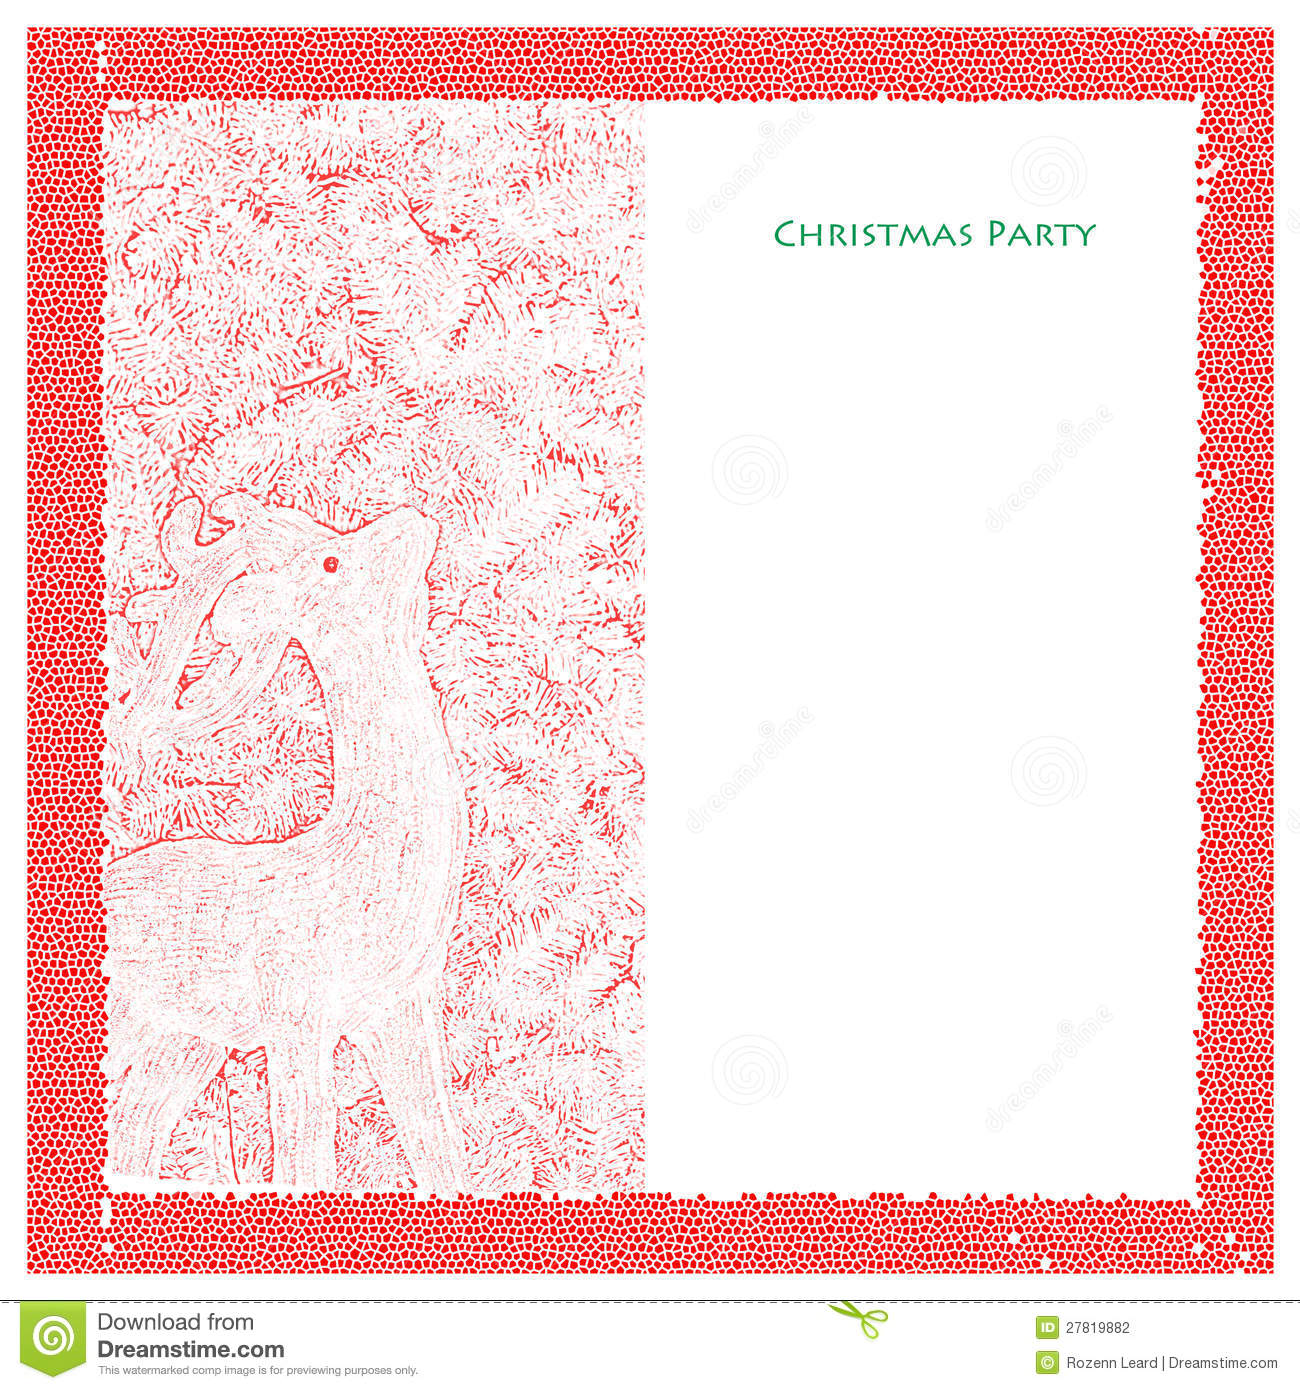 Marvelous Christmas Party Template Throughout Blank Program Template